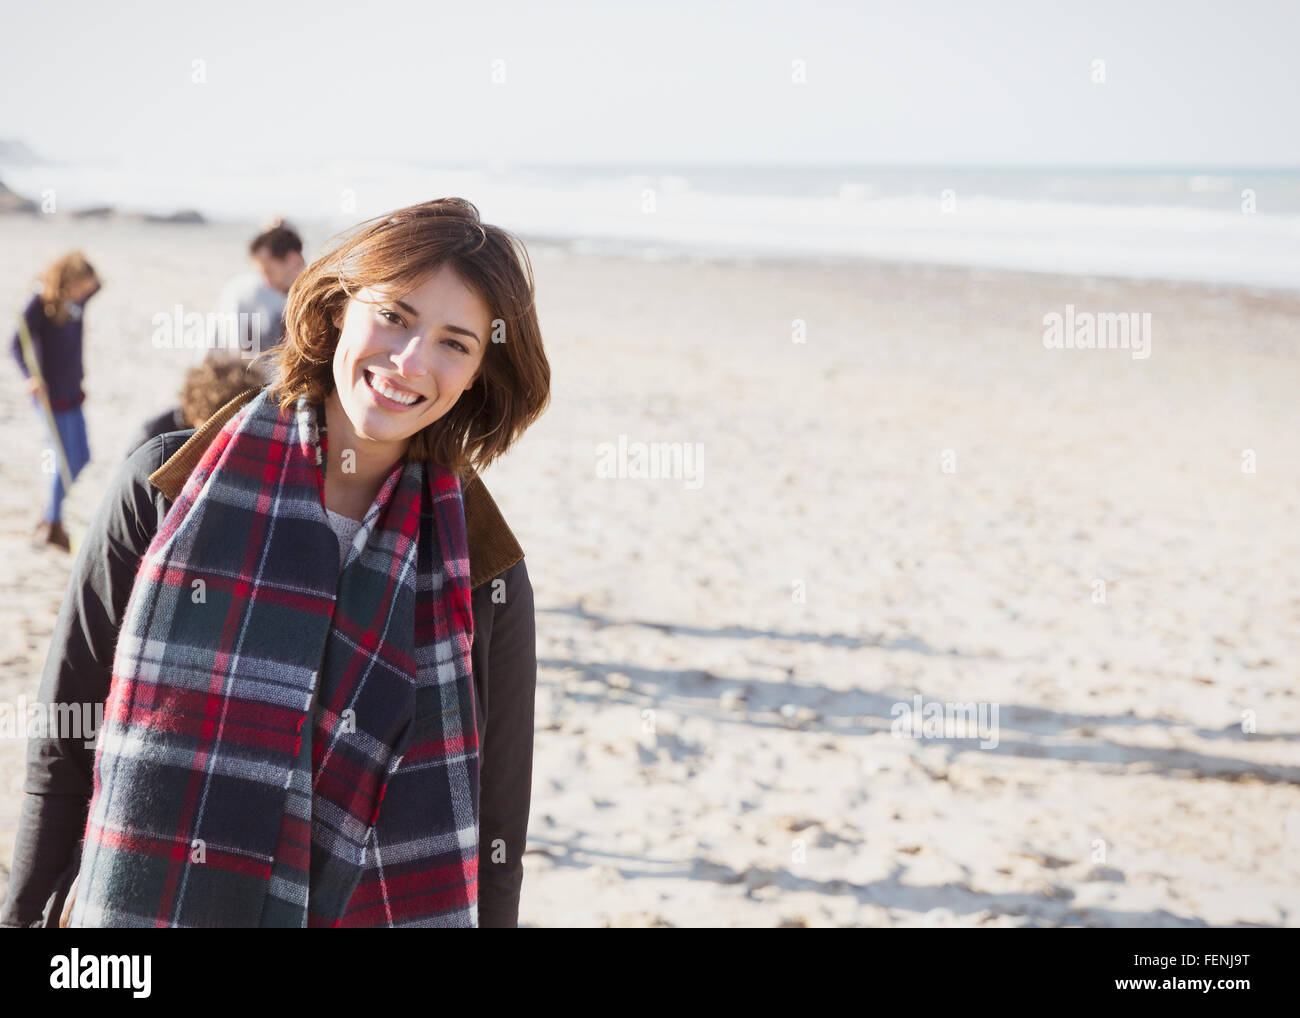 Portrait smiling woman in plaid scarf on sunny beach - Stock Image